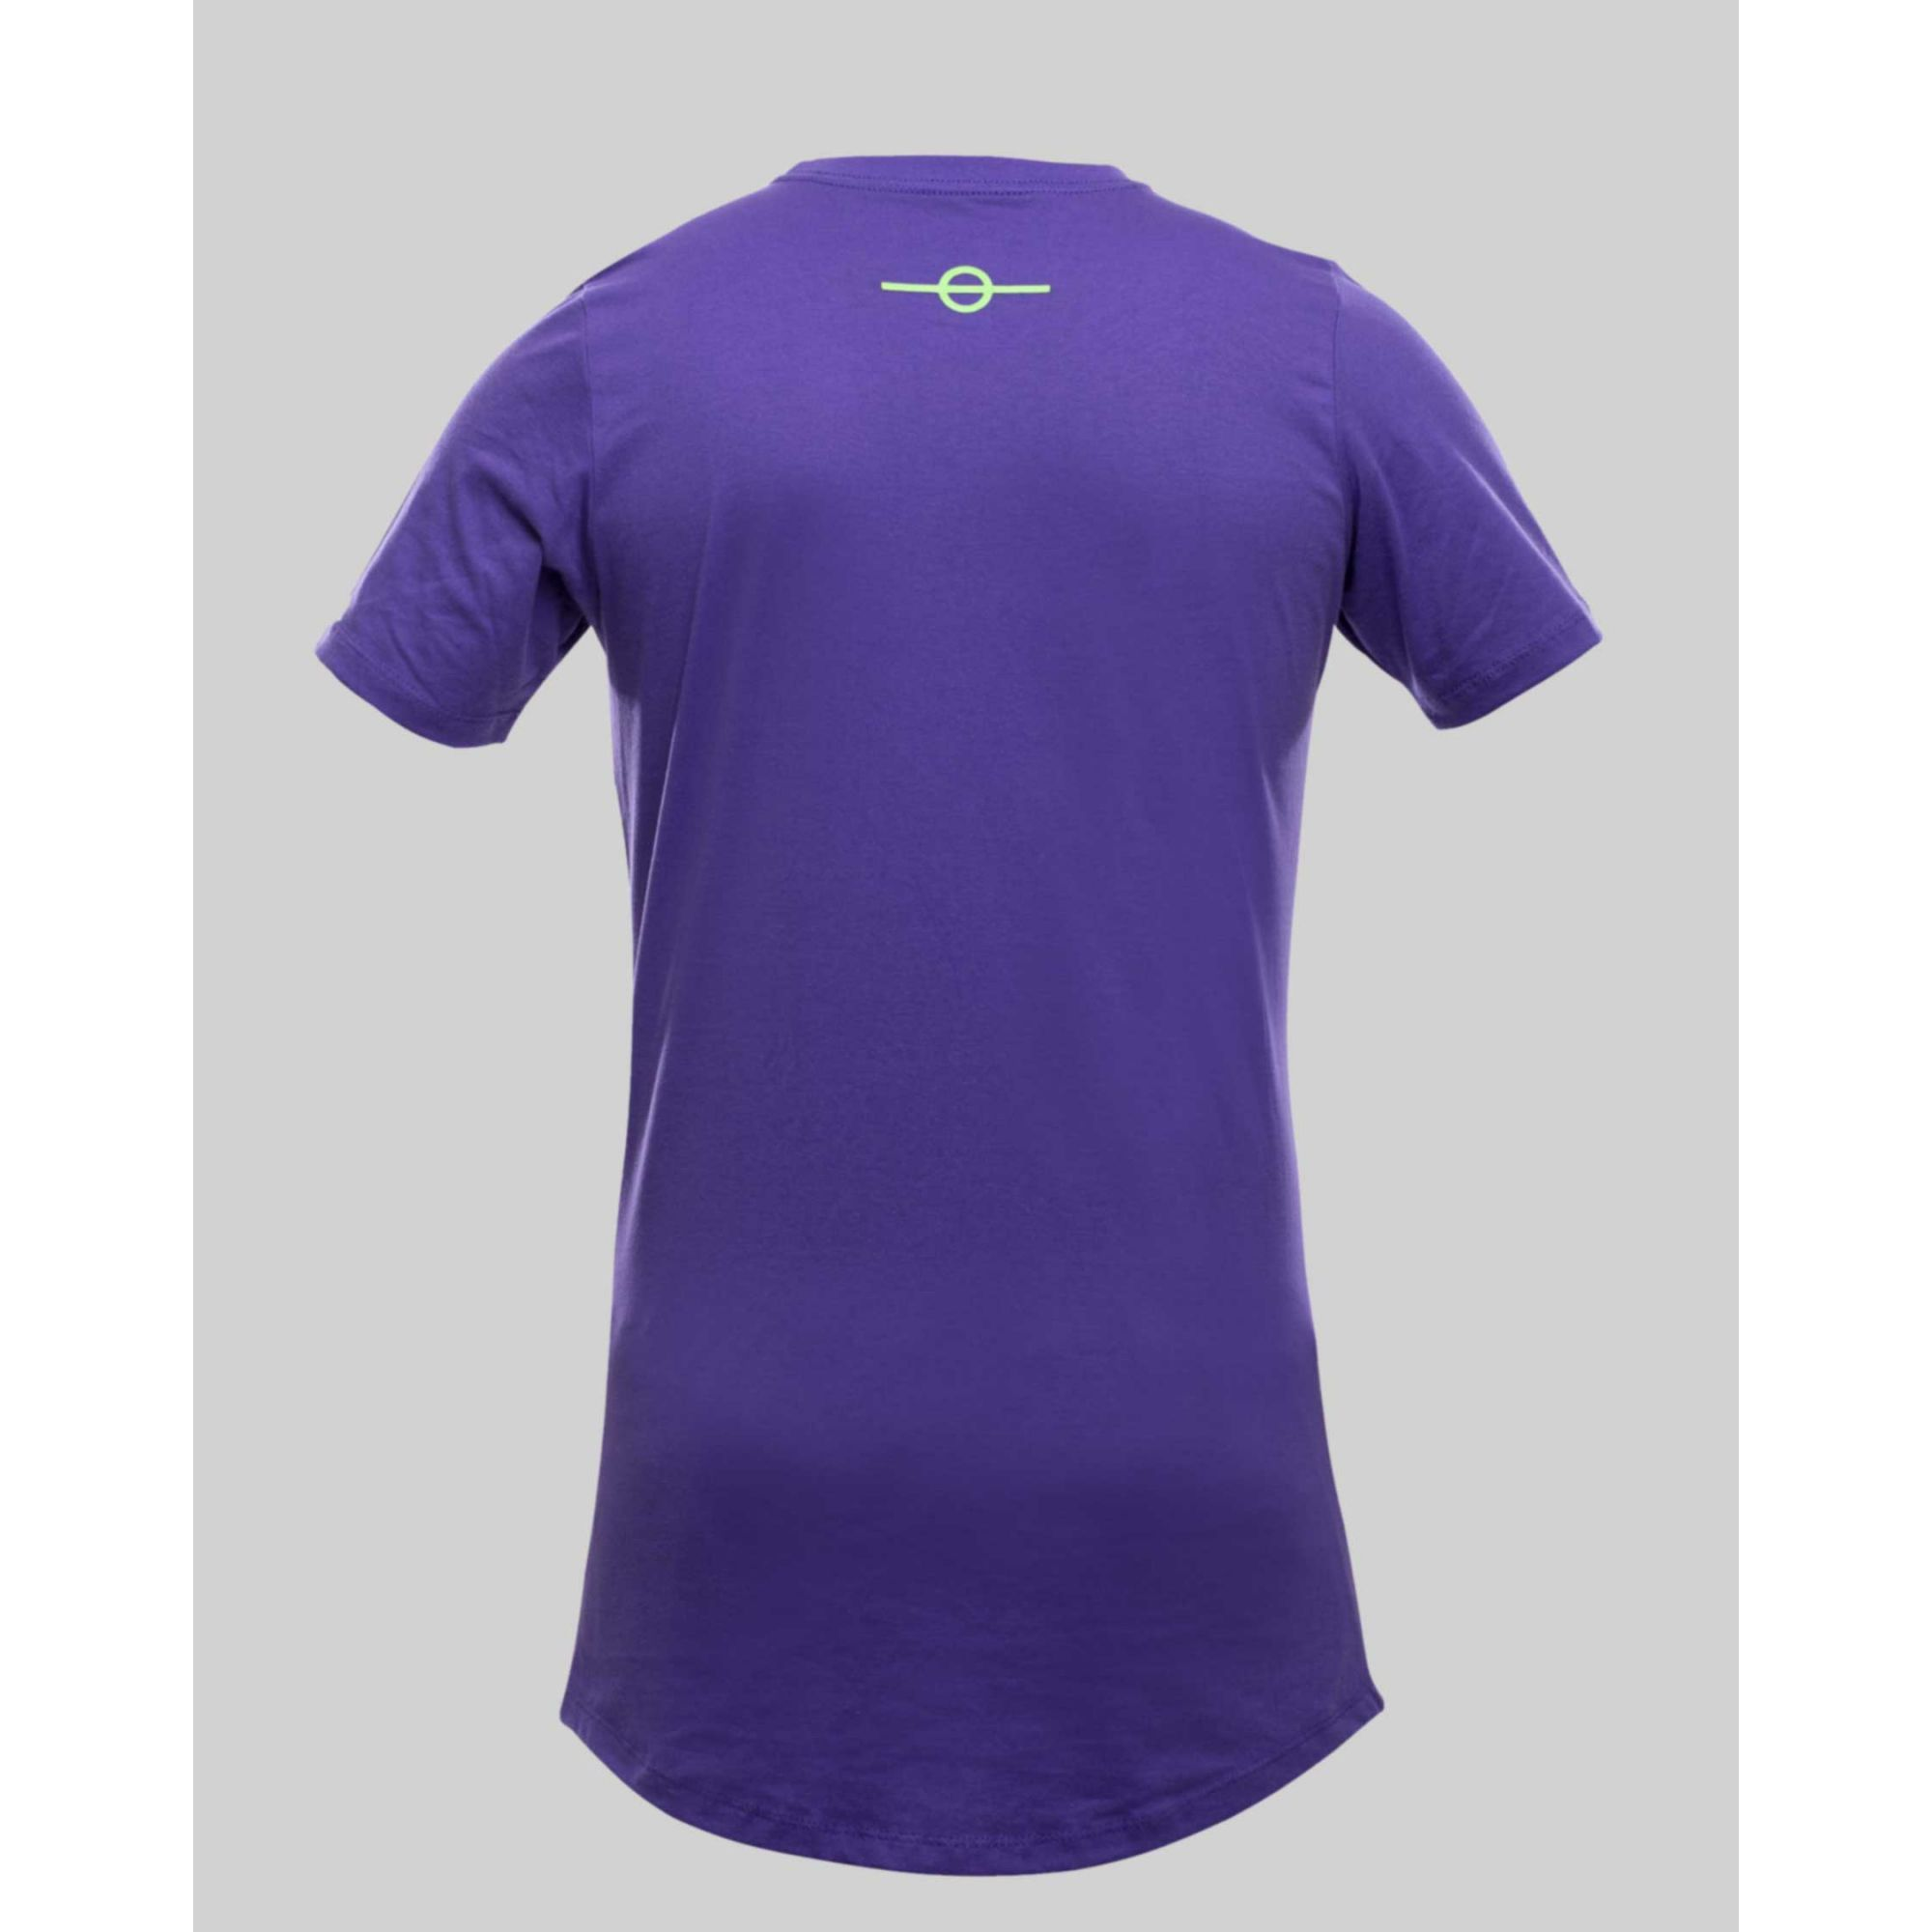 Camiseta Buh Fluor Square Purple